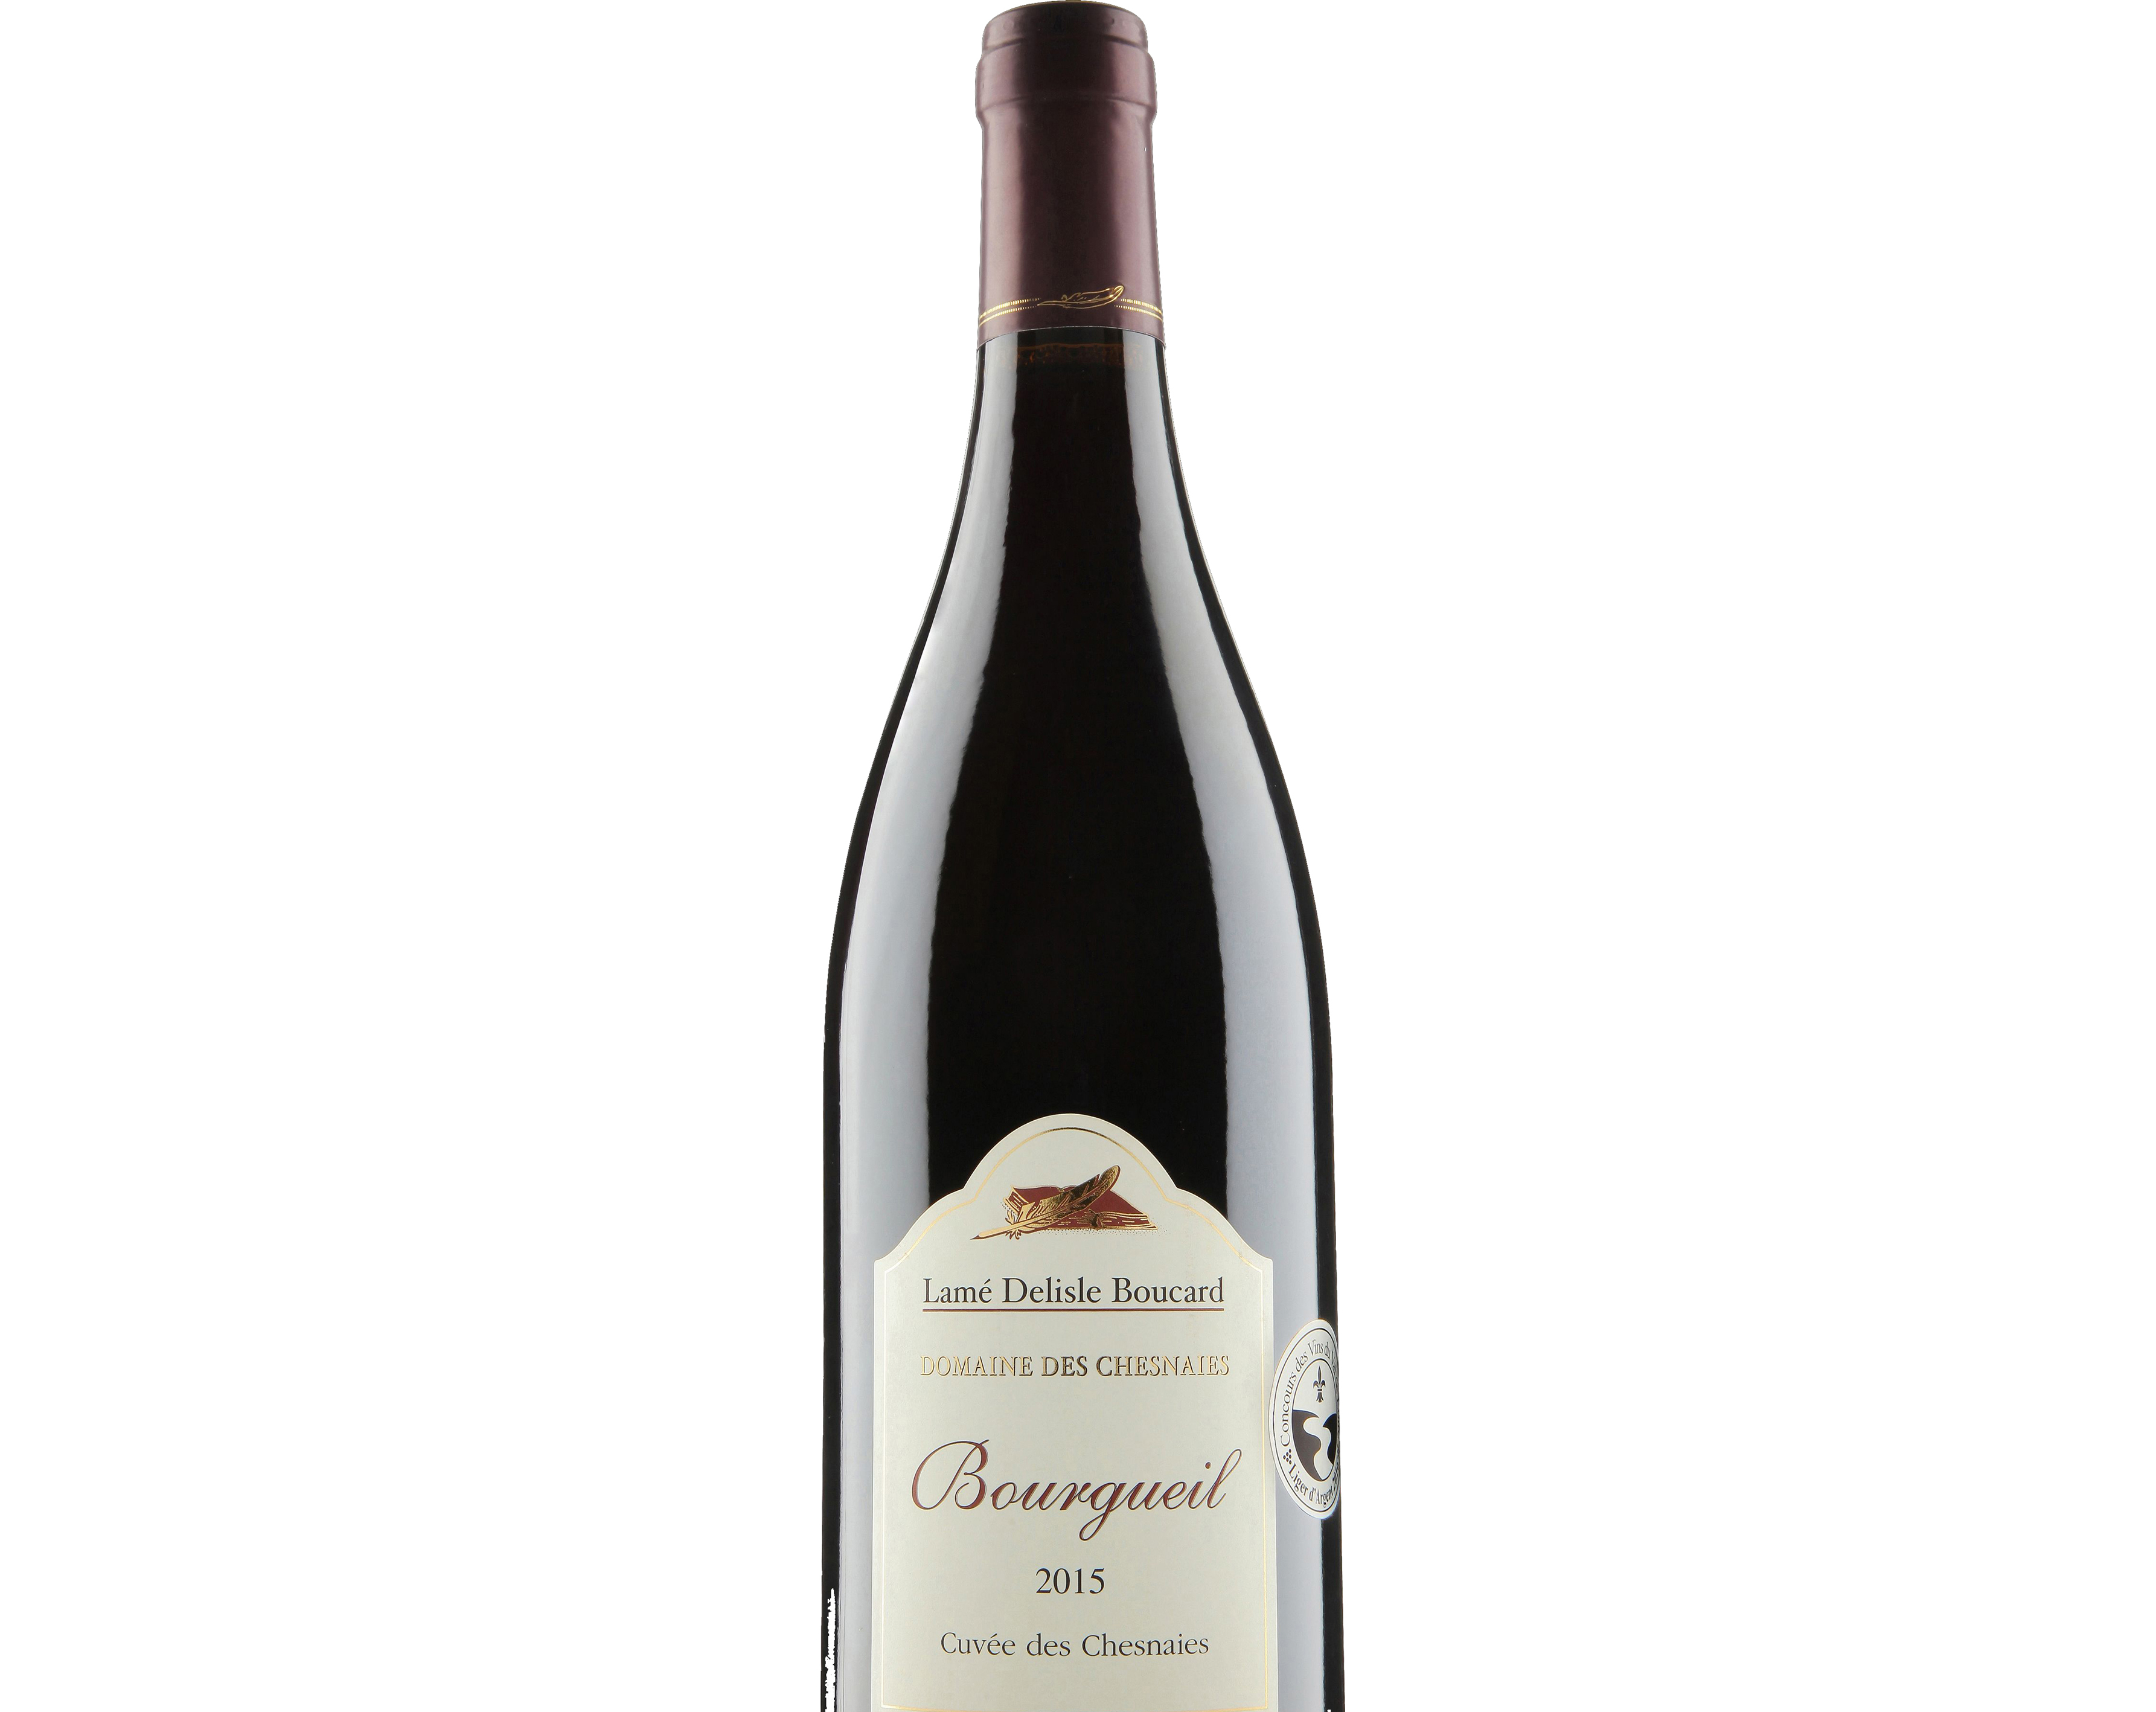 Bottle of Loire red wine